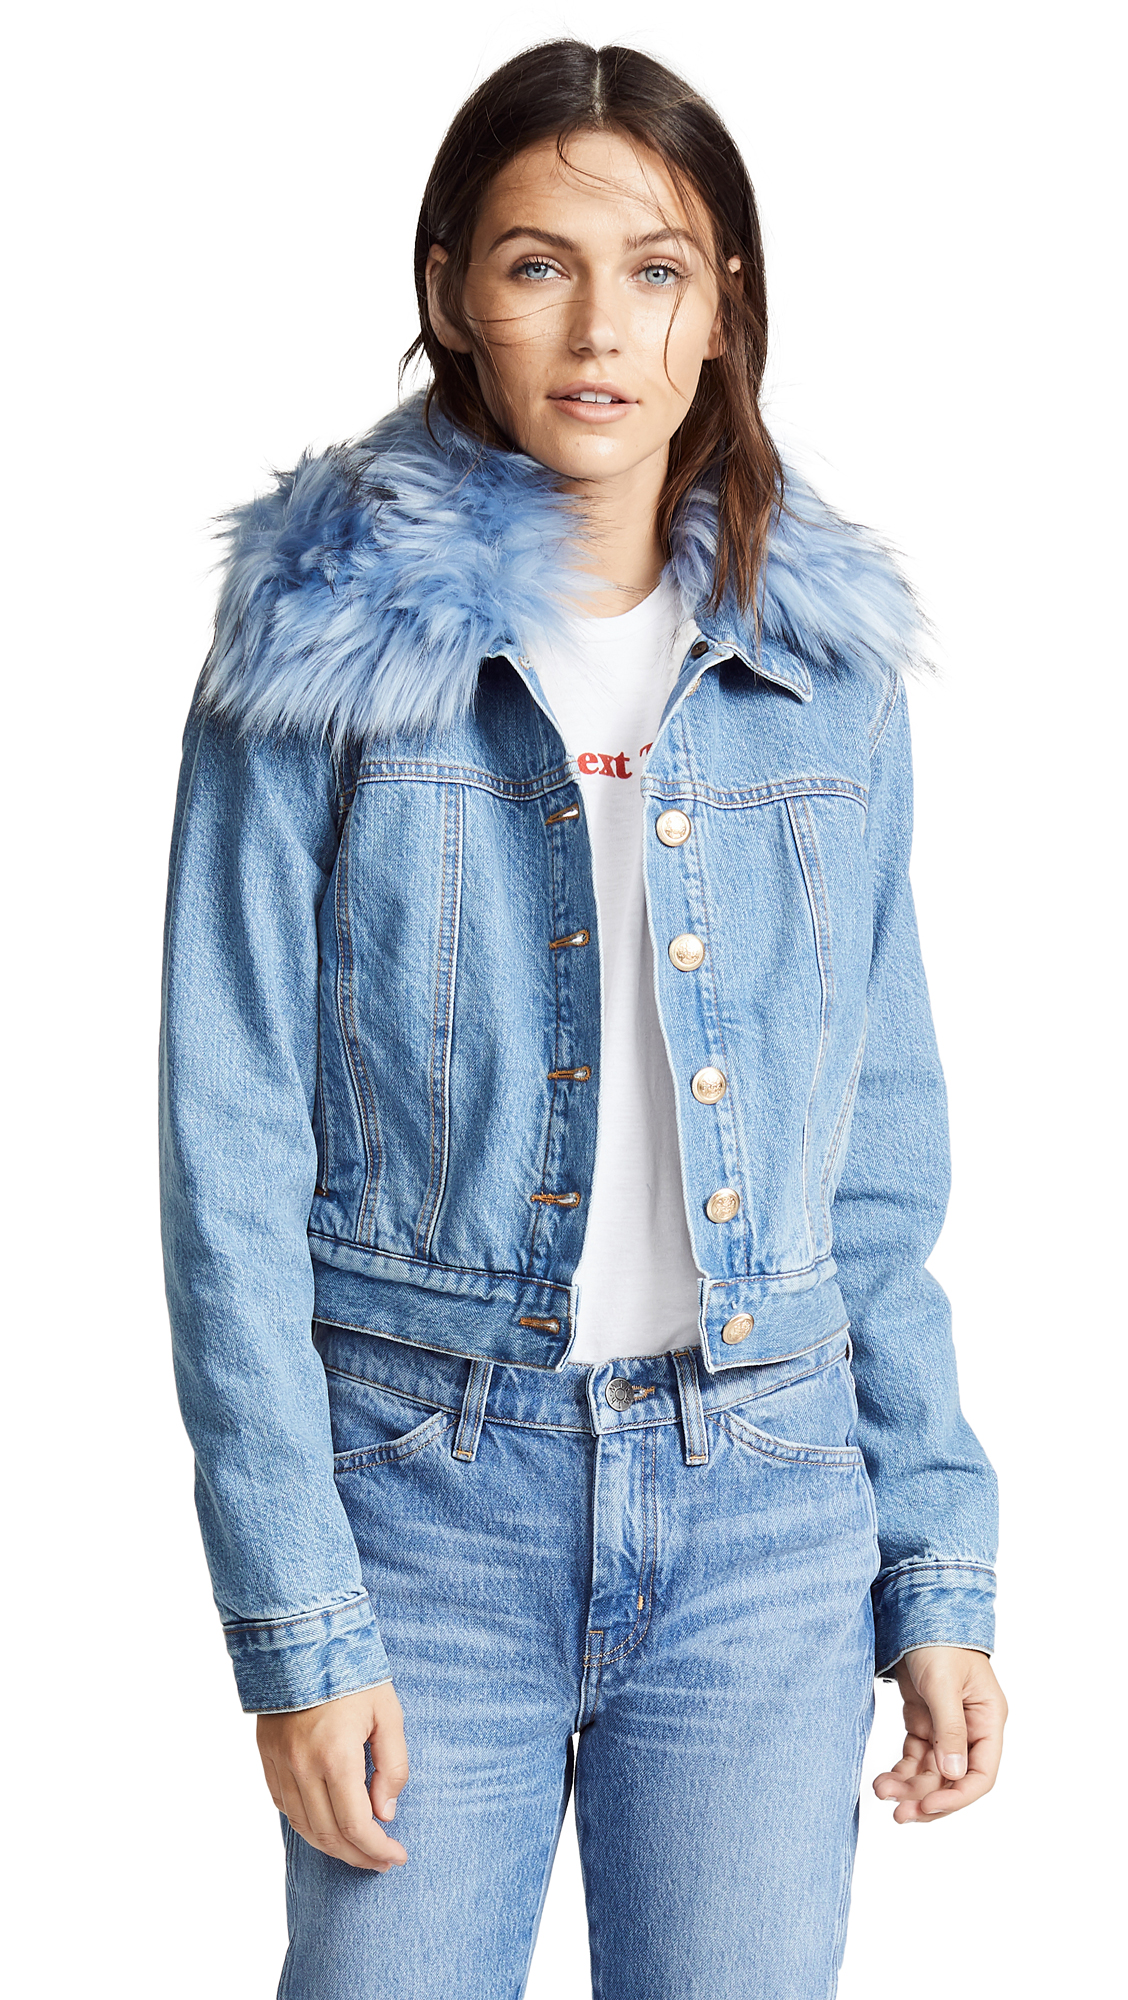 ei8htdreams Shearling Lined Cropped Denim Jacket with Removable Collar In Light Wash